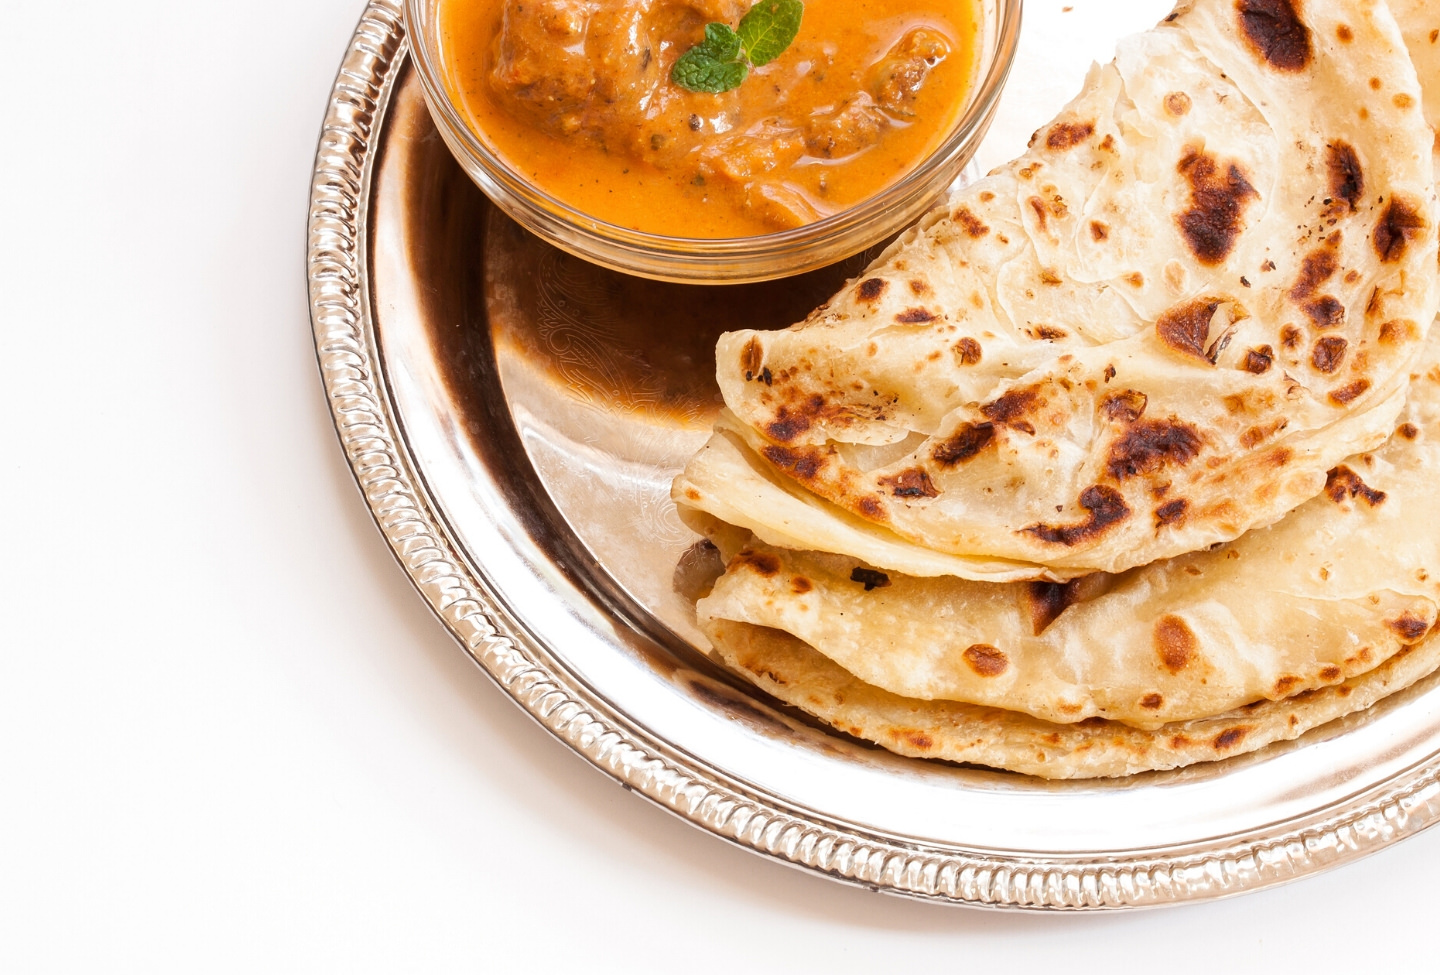 Kirnas-kitchen-authentic-indian-food-home-cooking-sussex-1